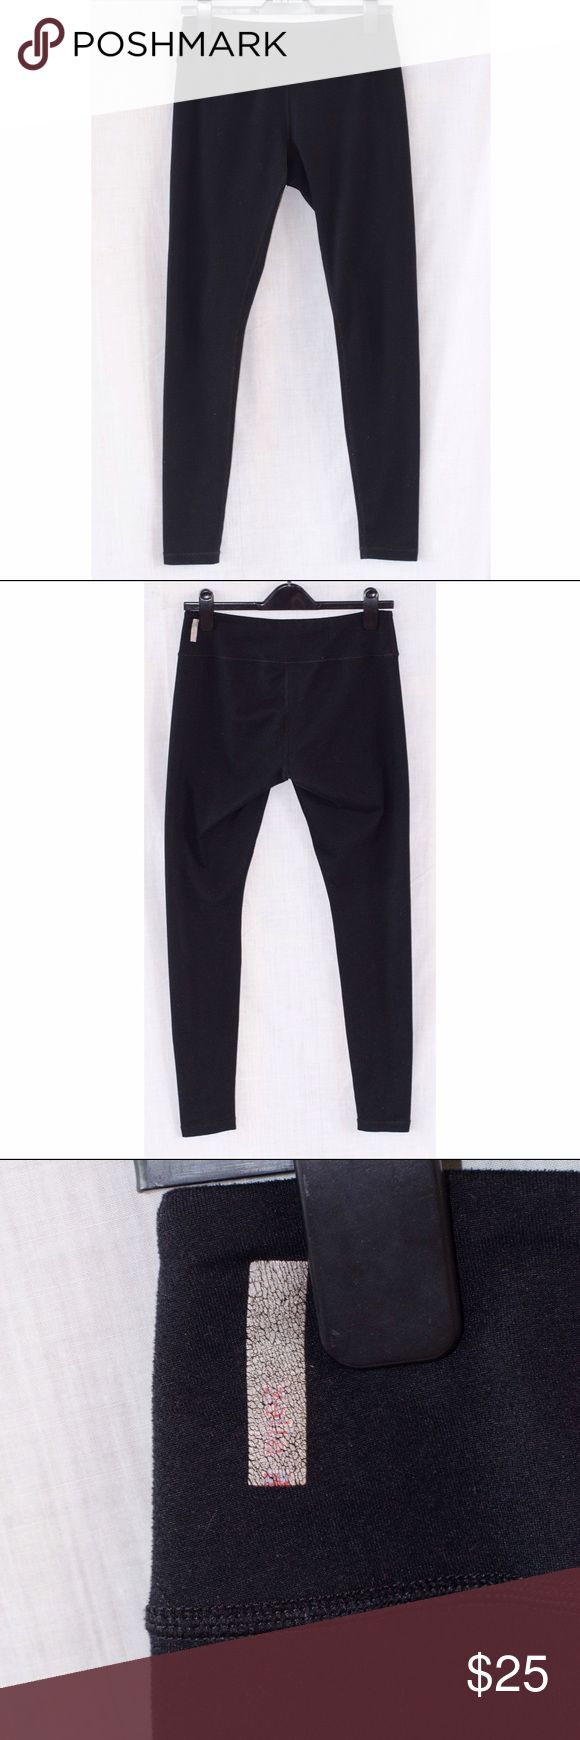 Zella black leggings Black leggings by Zella from Nordstrom. Basic thick black material pulls everything in and gives a great shape. Zella label is worn, but otherwise great condition. Size medium. Zella Pants Leggings